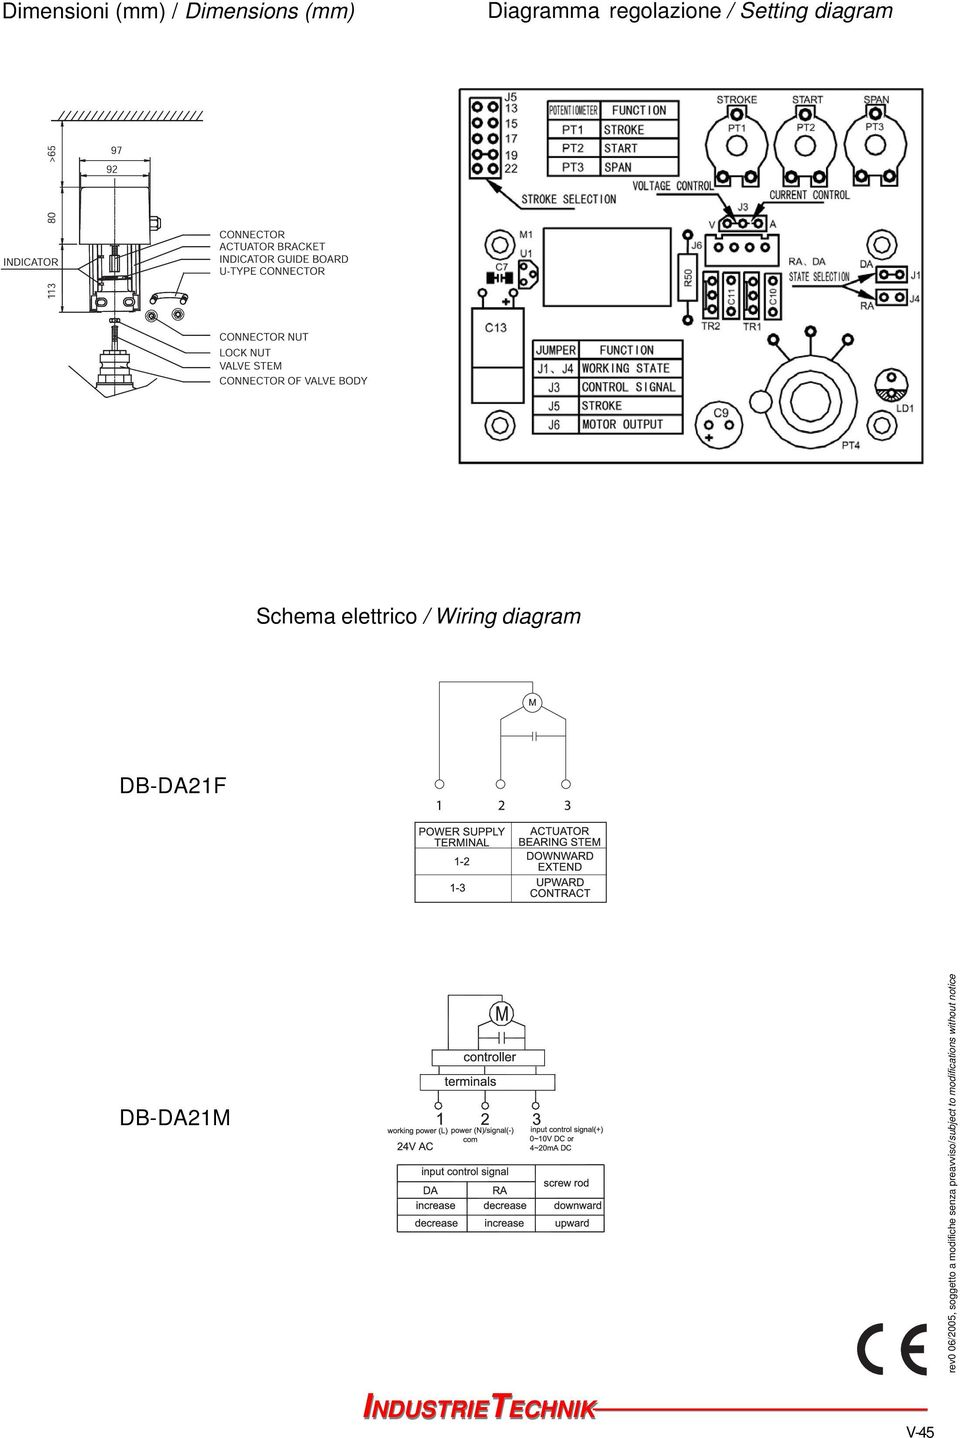 Wiring diagram D-D21F D-D21M rev0 06/2005, soggetto a